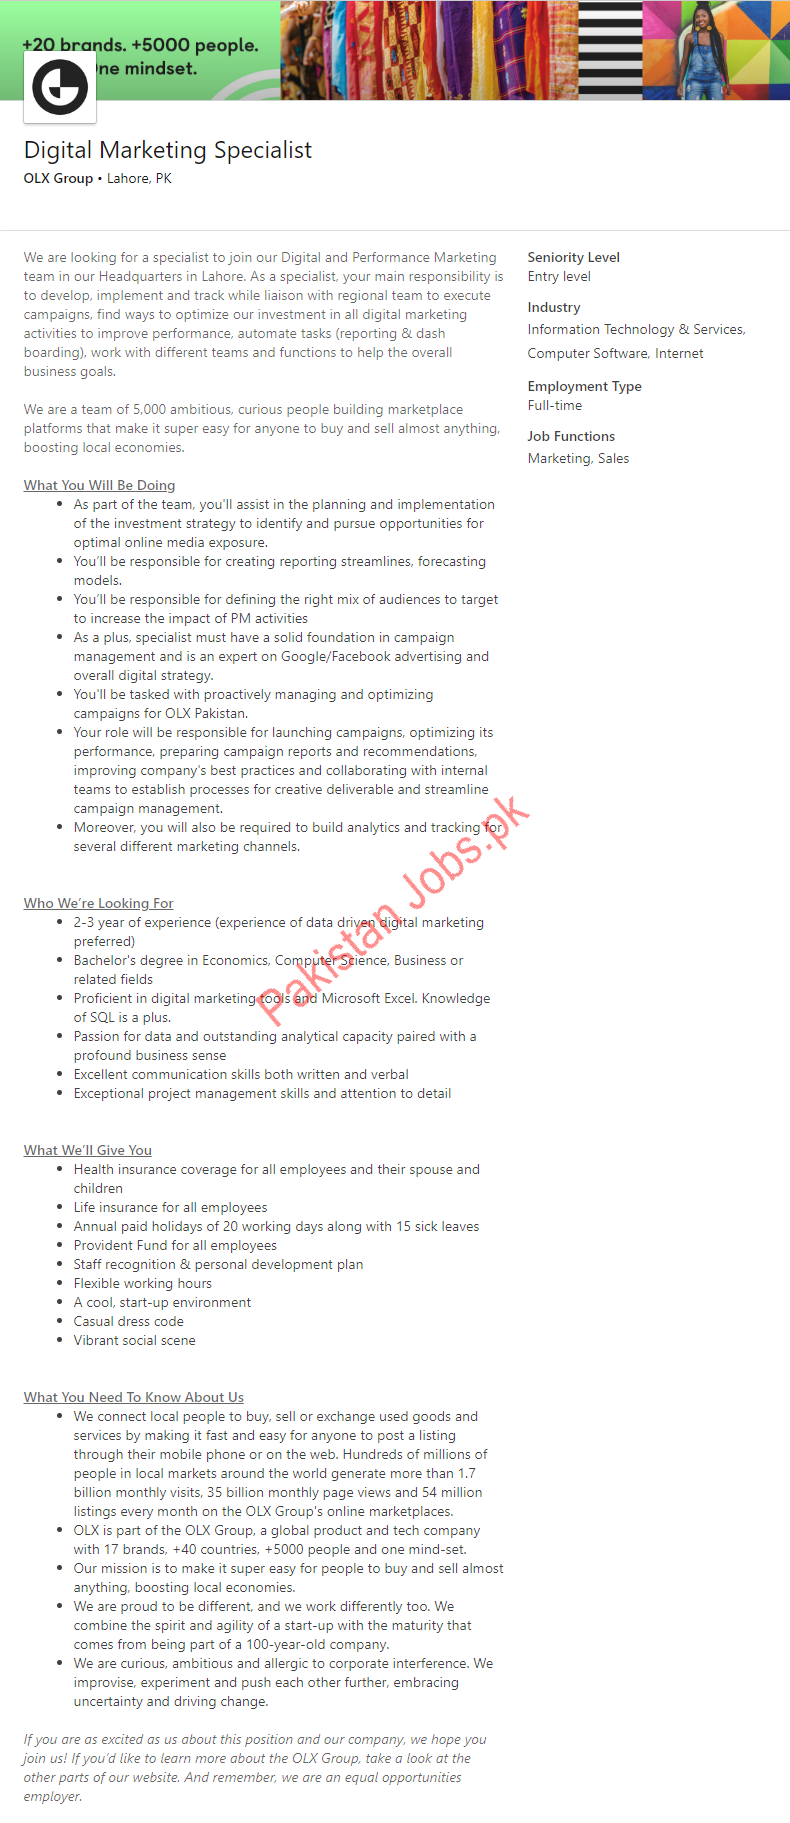 Digital Marketing Specialist Job in Lahore 2019 OLX Group